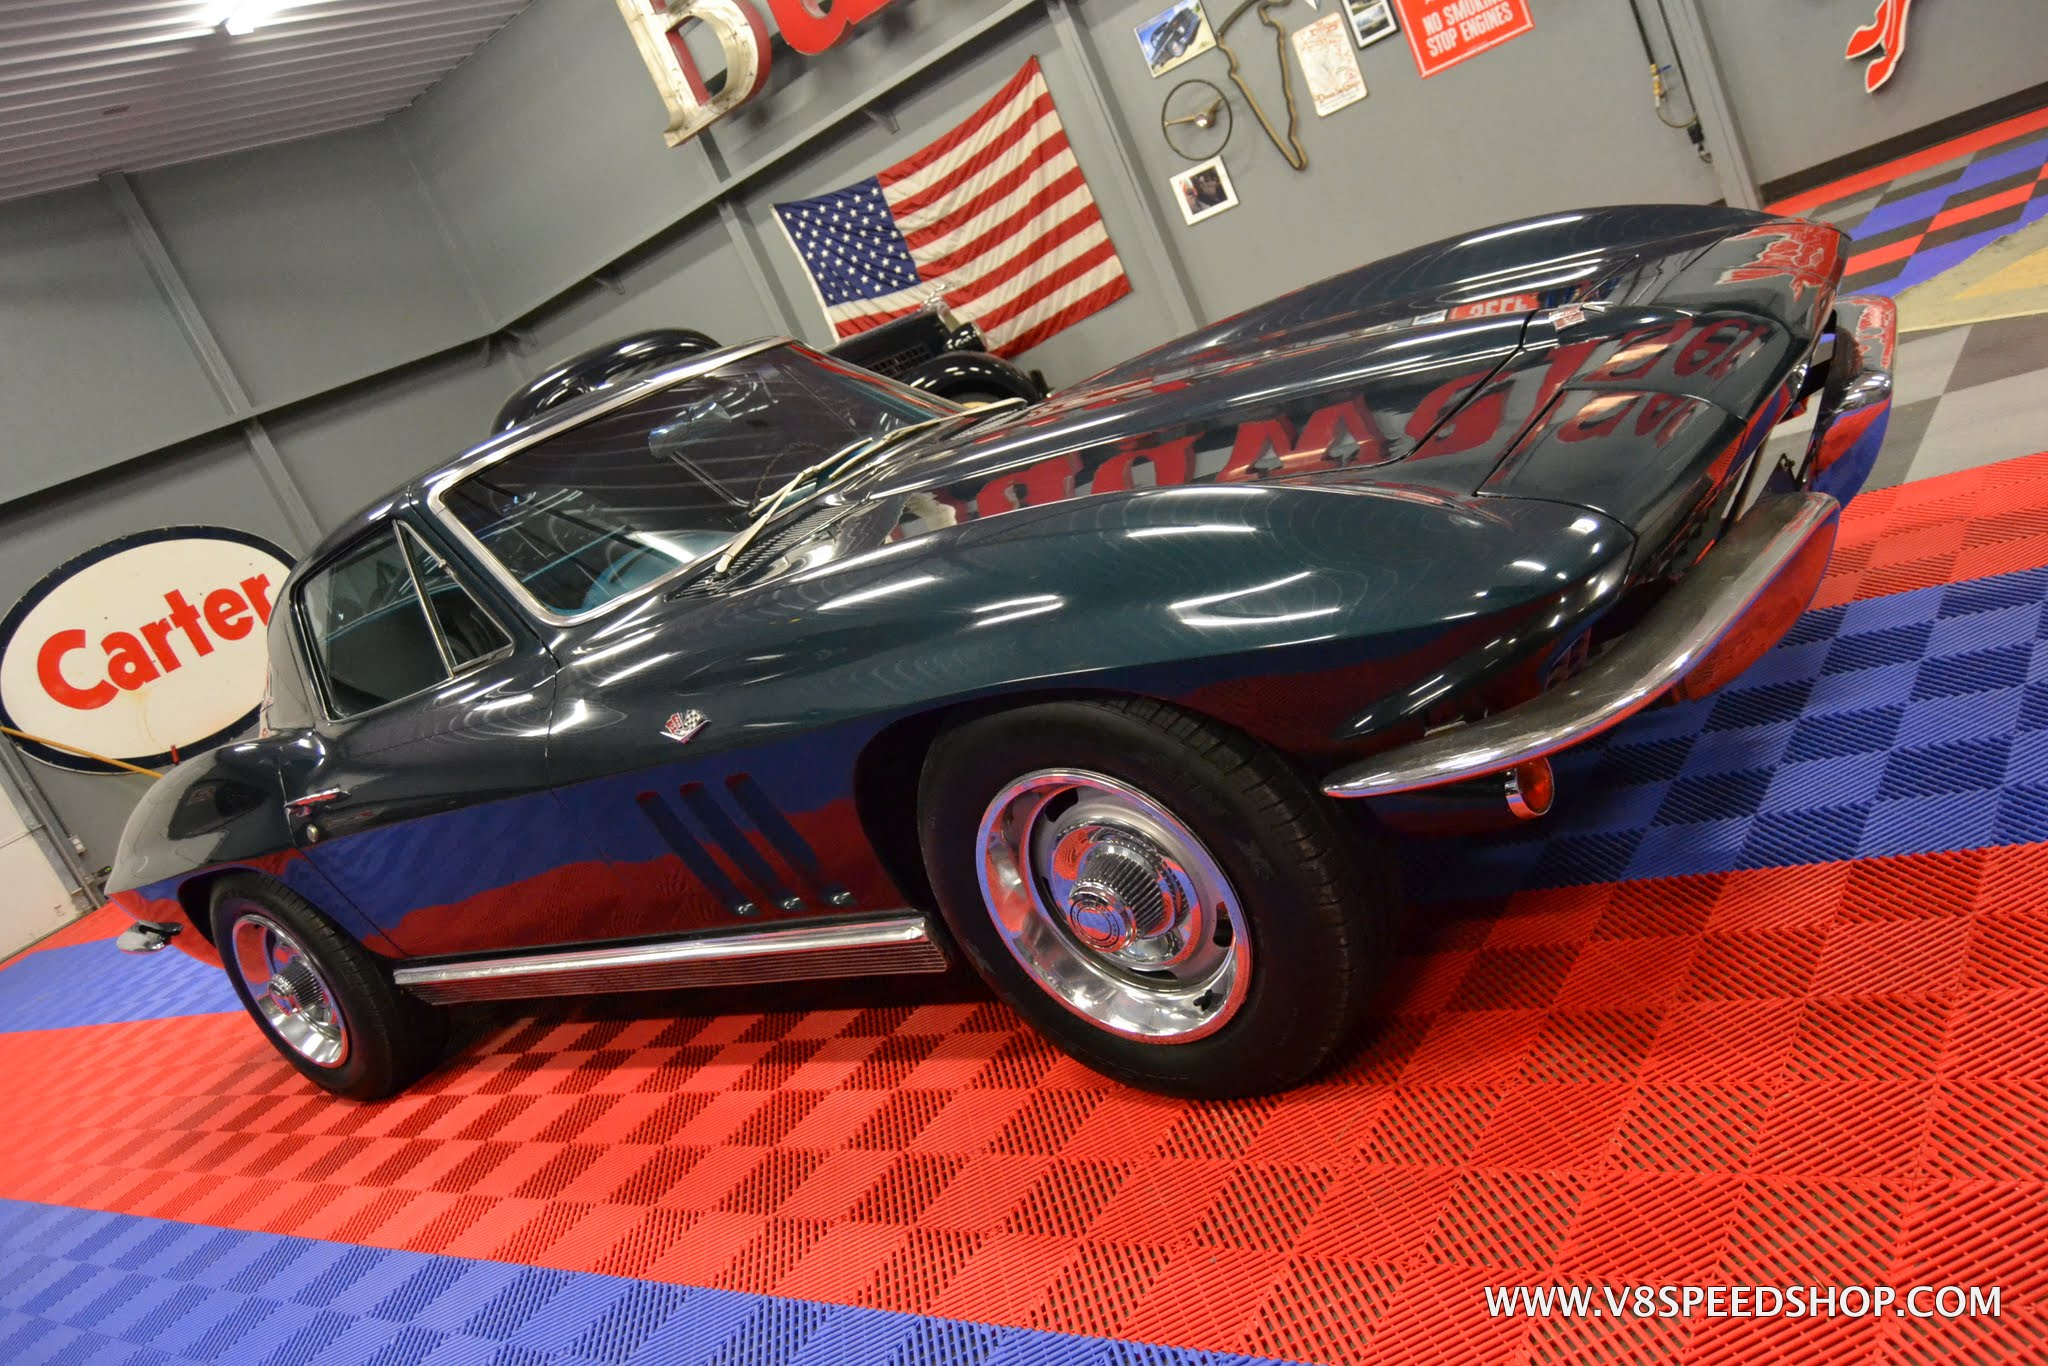 1966 Chevrolet Corvette Maintenance at V8 Speed & Resto Shop